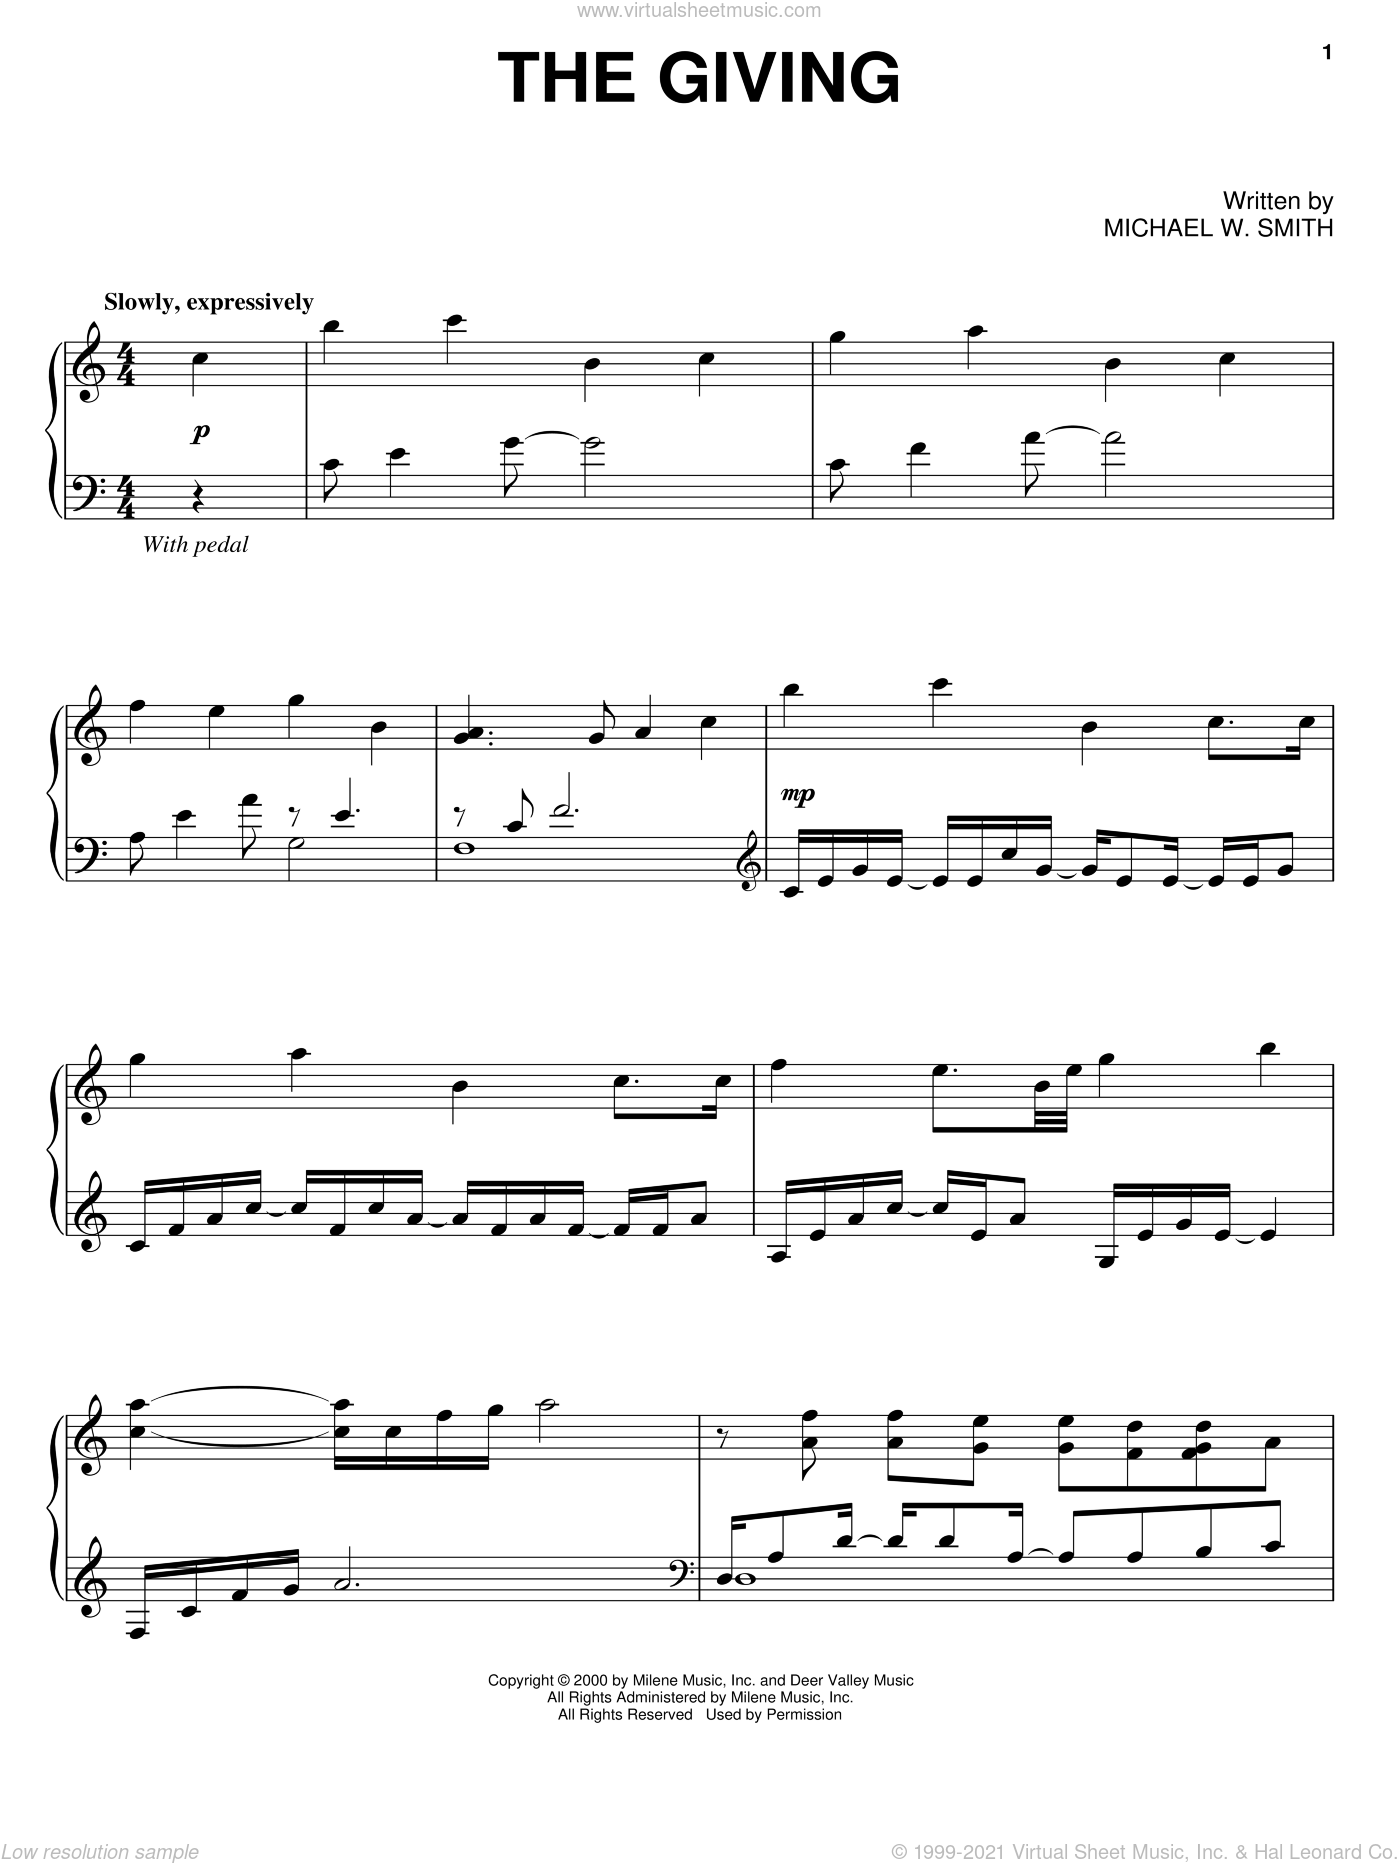 The Giving sheet music for piano solo by Michael W. Smith, intermediate skill level